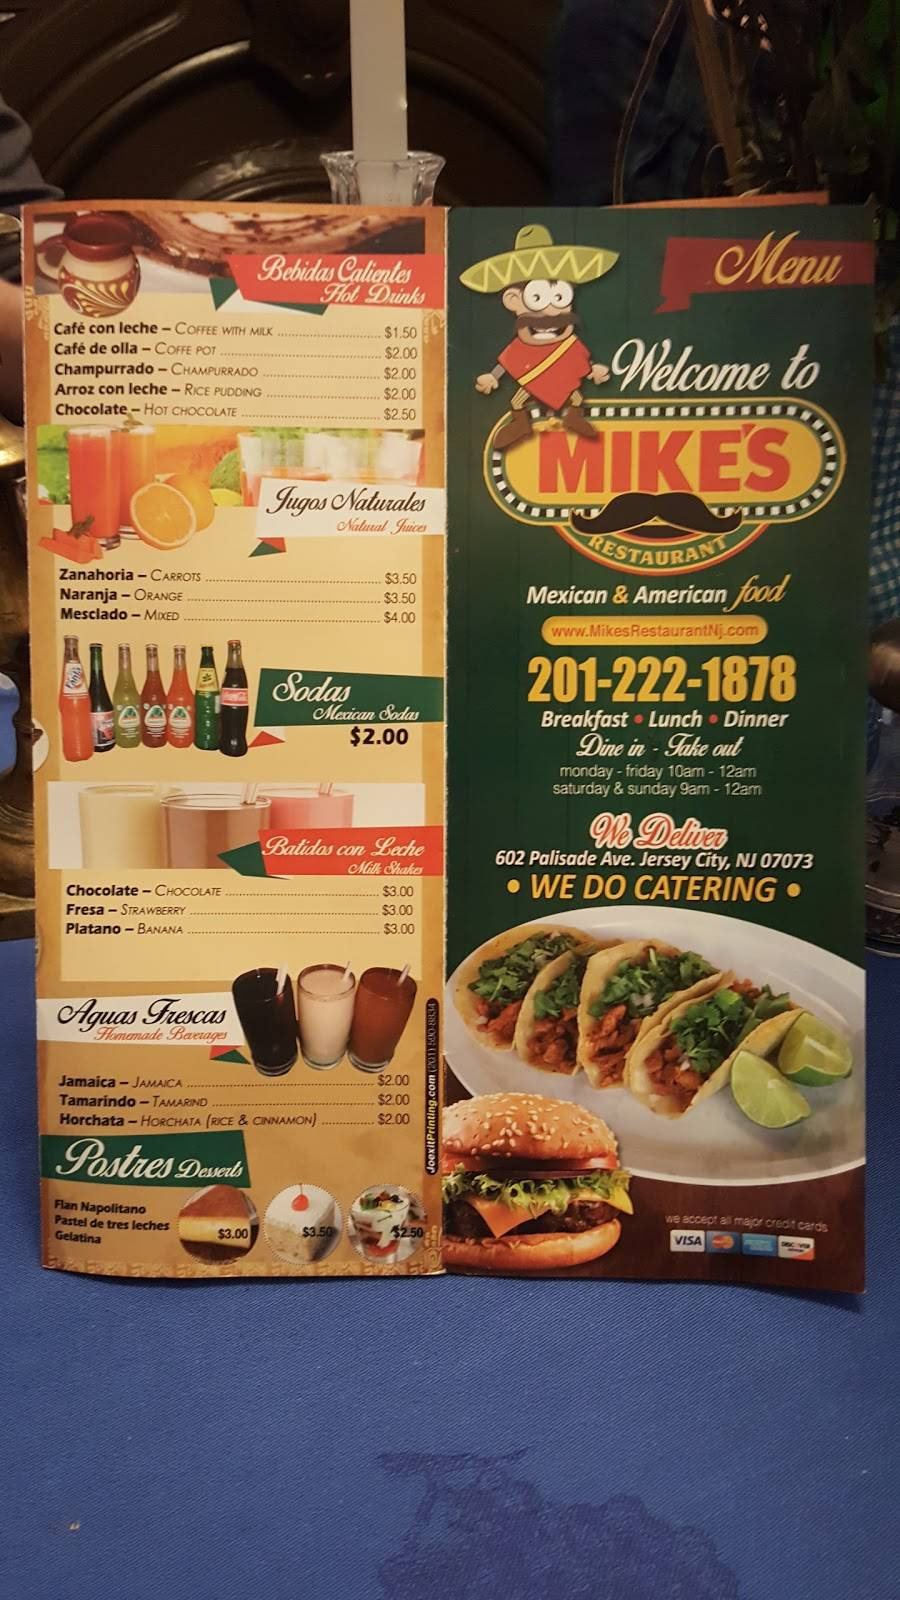 Mikes Restaurant   restaurant   602 Palisade Ave, Jersey City, NJ 07307, USA   2012221878 OR +1 201-222-1878